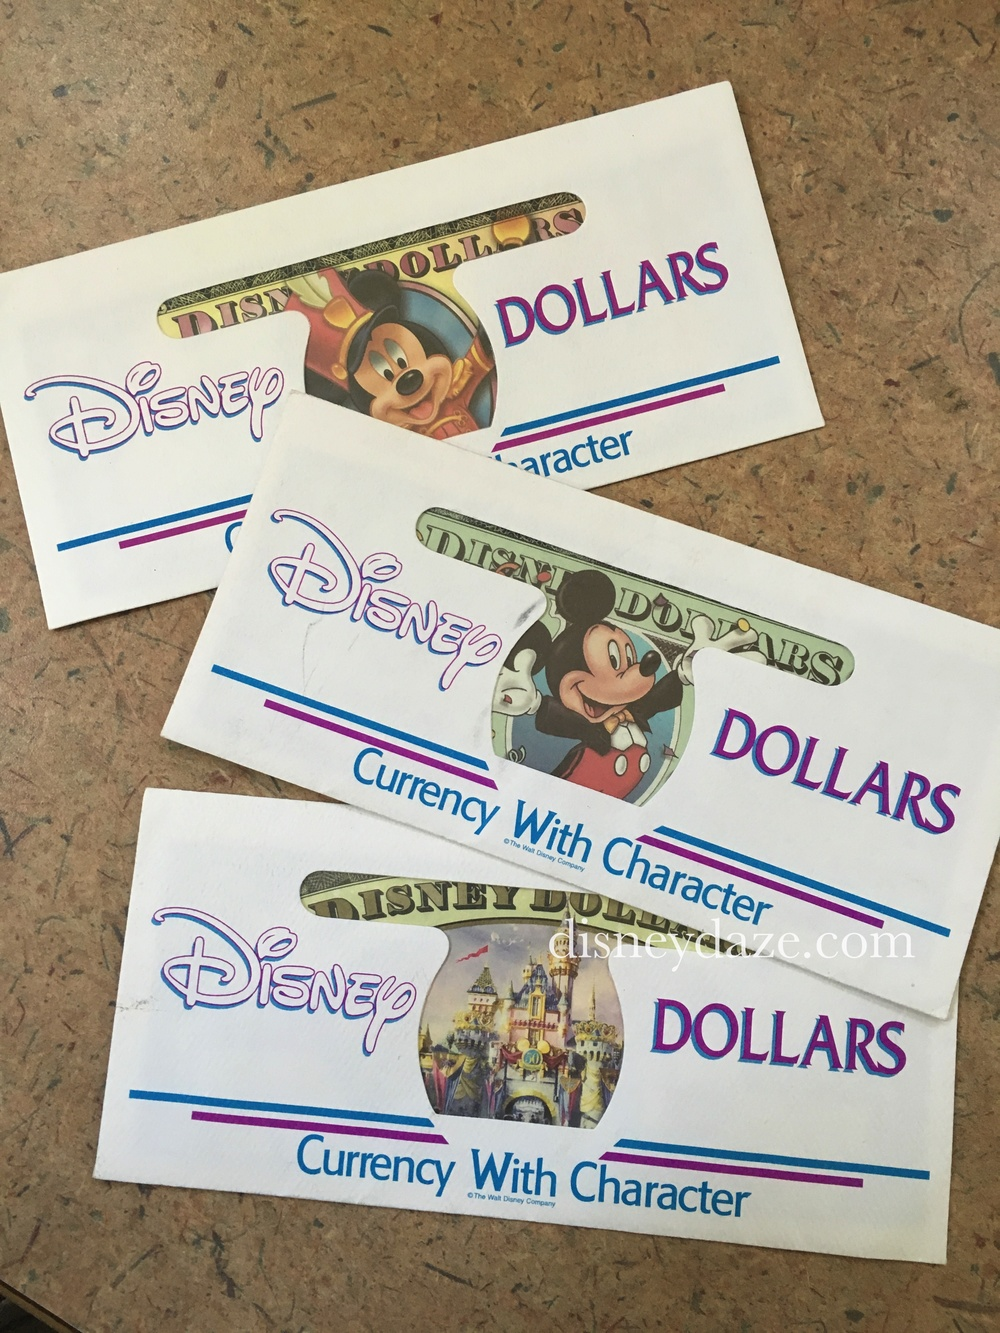 You could ask for special envelopes to protect your Disney money.